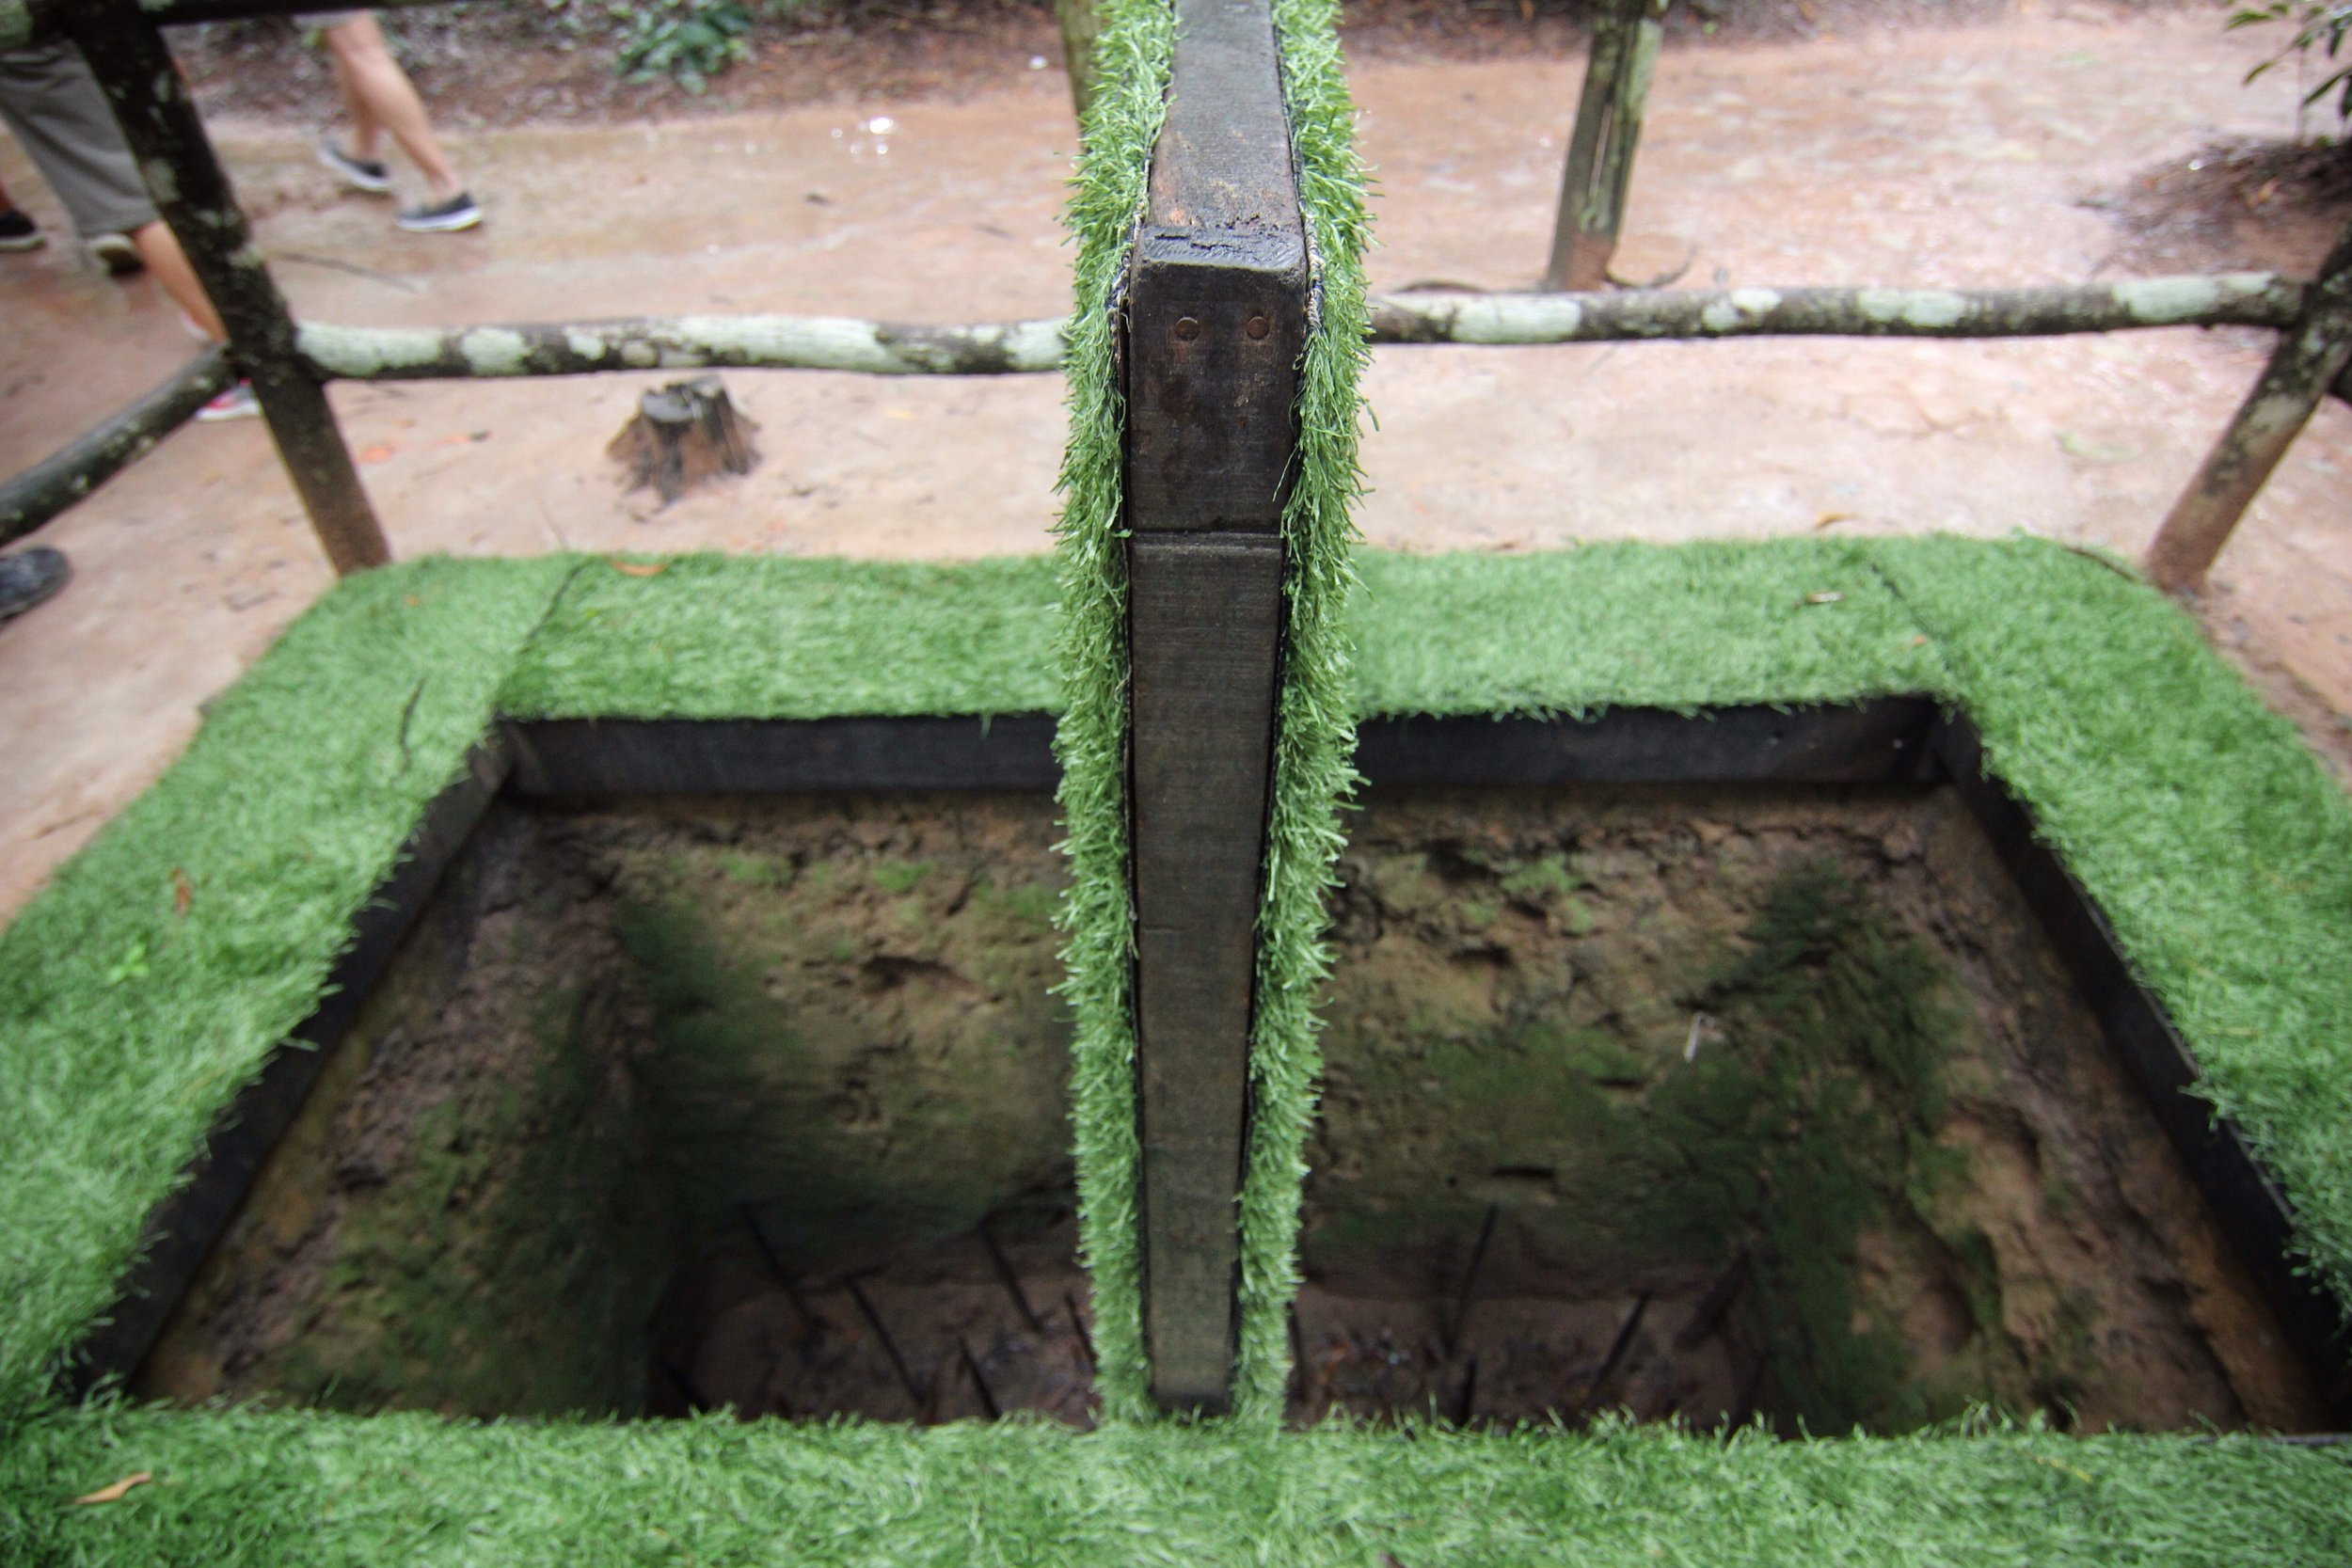 One sort of a trap - a false floor above a pit of spikes.